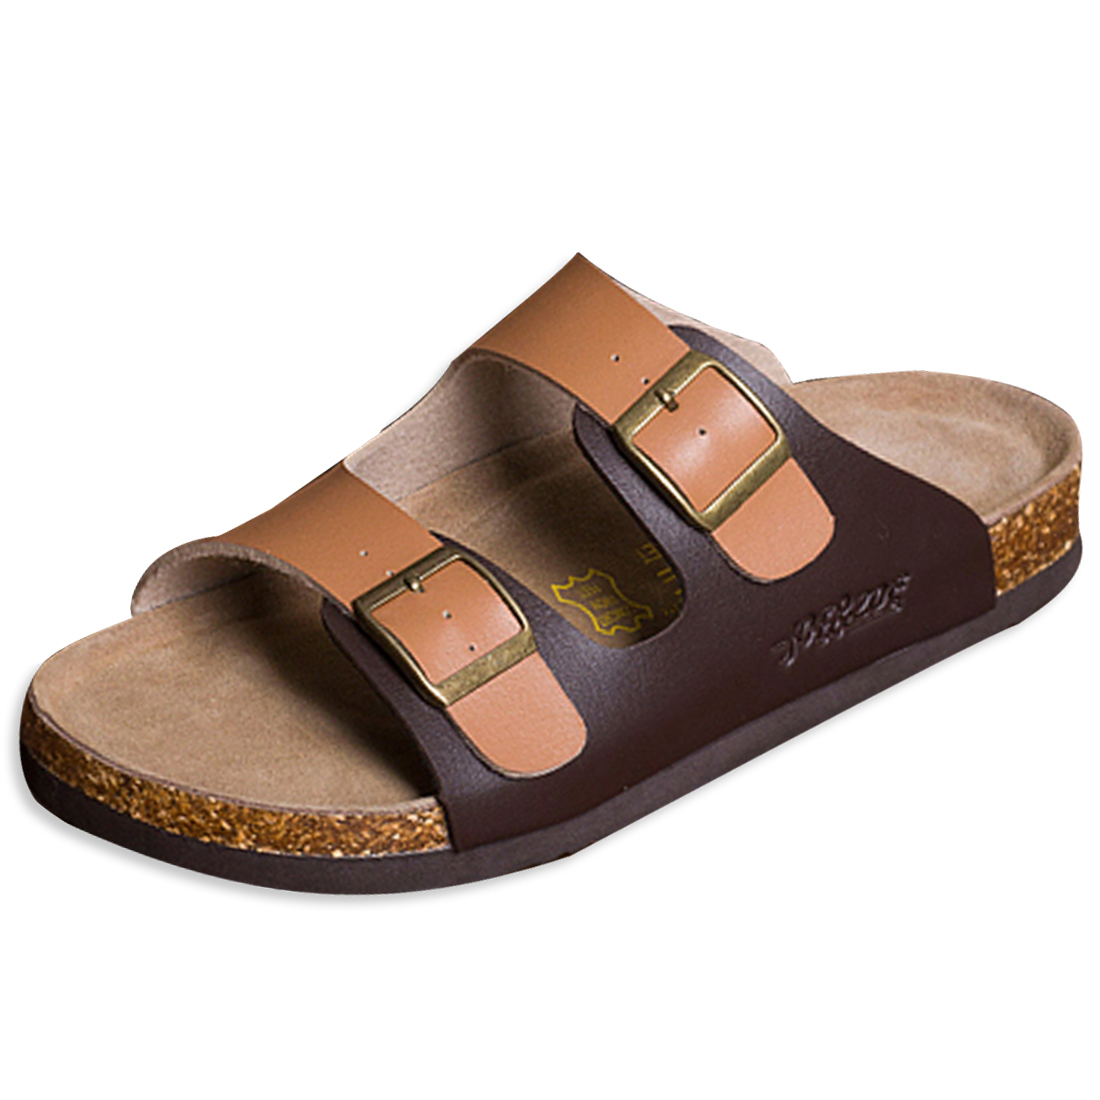 Classic Leisure Buckled Sandals Light Coffee Brown for Men US 6